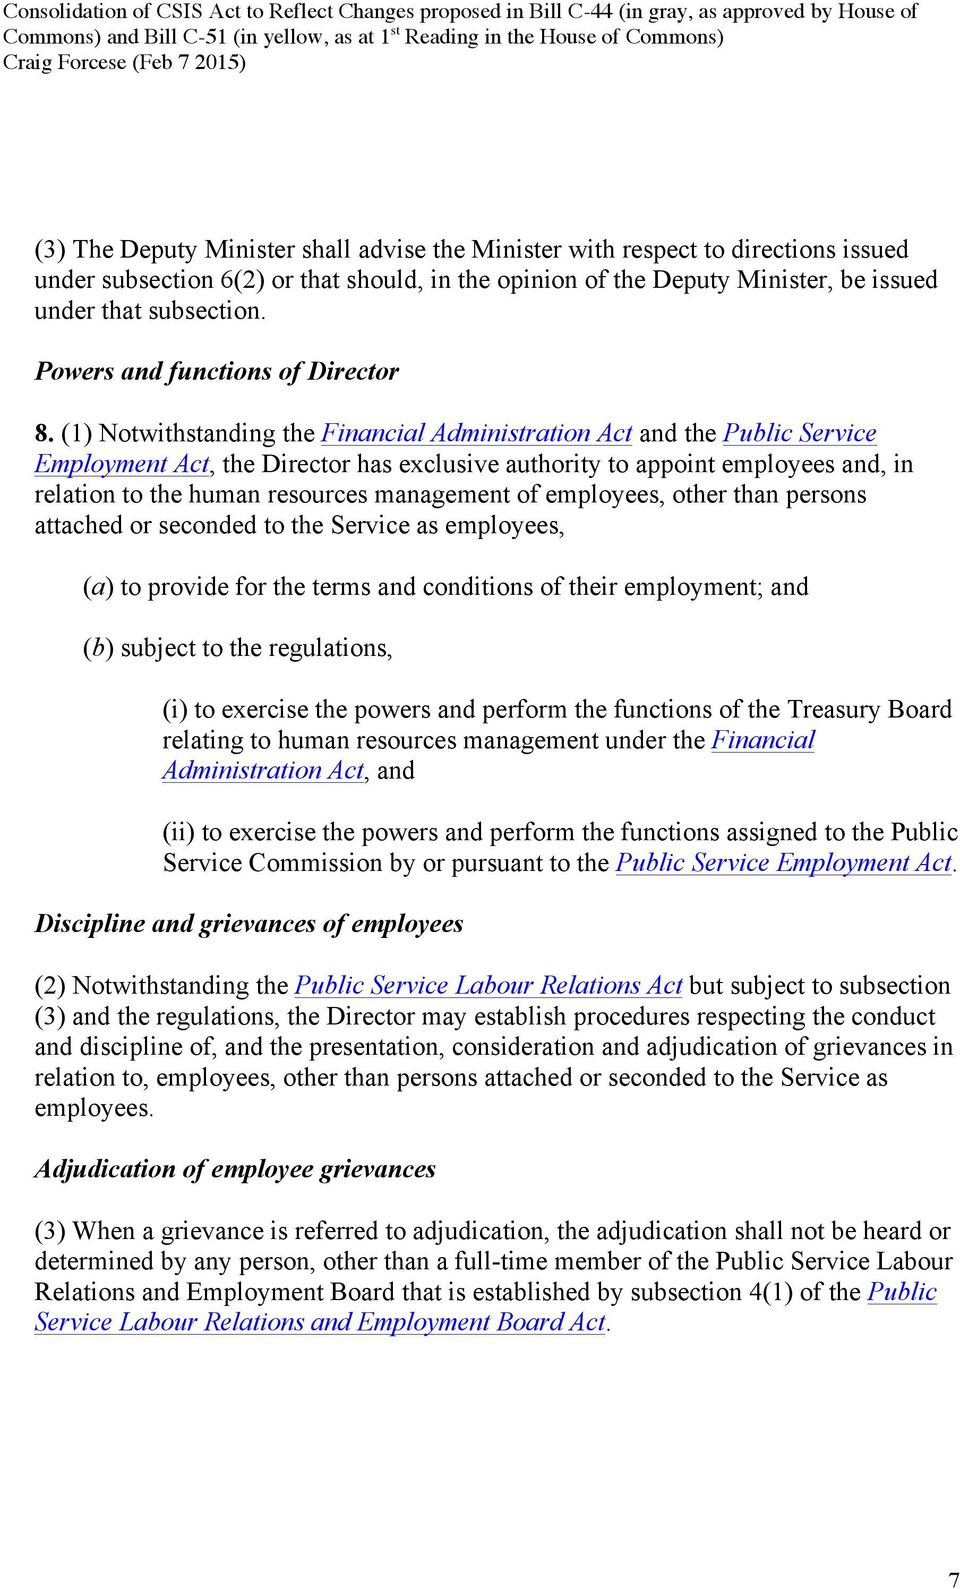 (1) Notwithstanding the Financial Administration Act and the Public Service Employment Act, the Director has exclusive authority to appoint employees and, in relation to the human resources